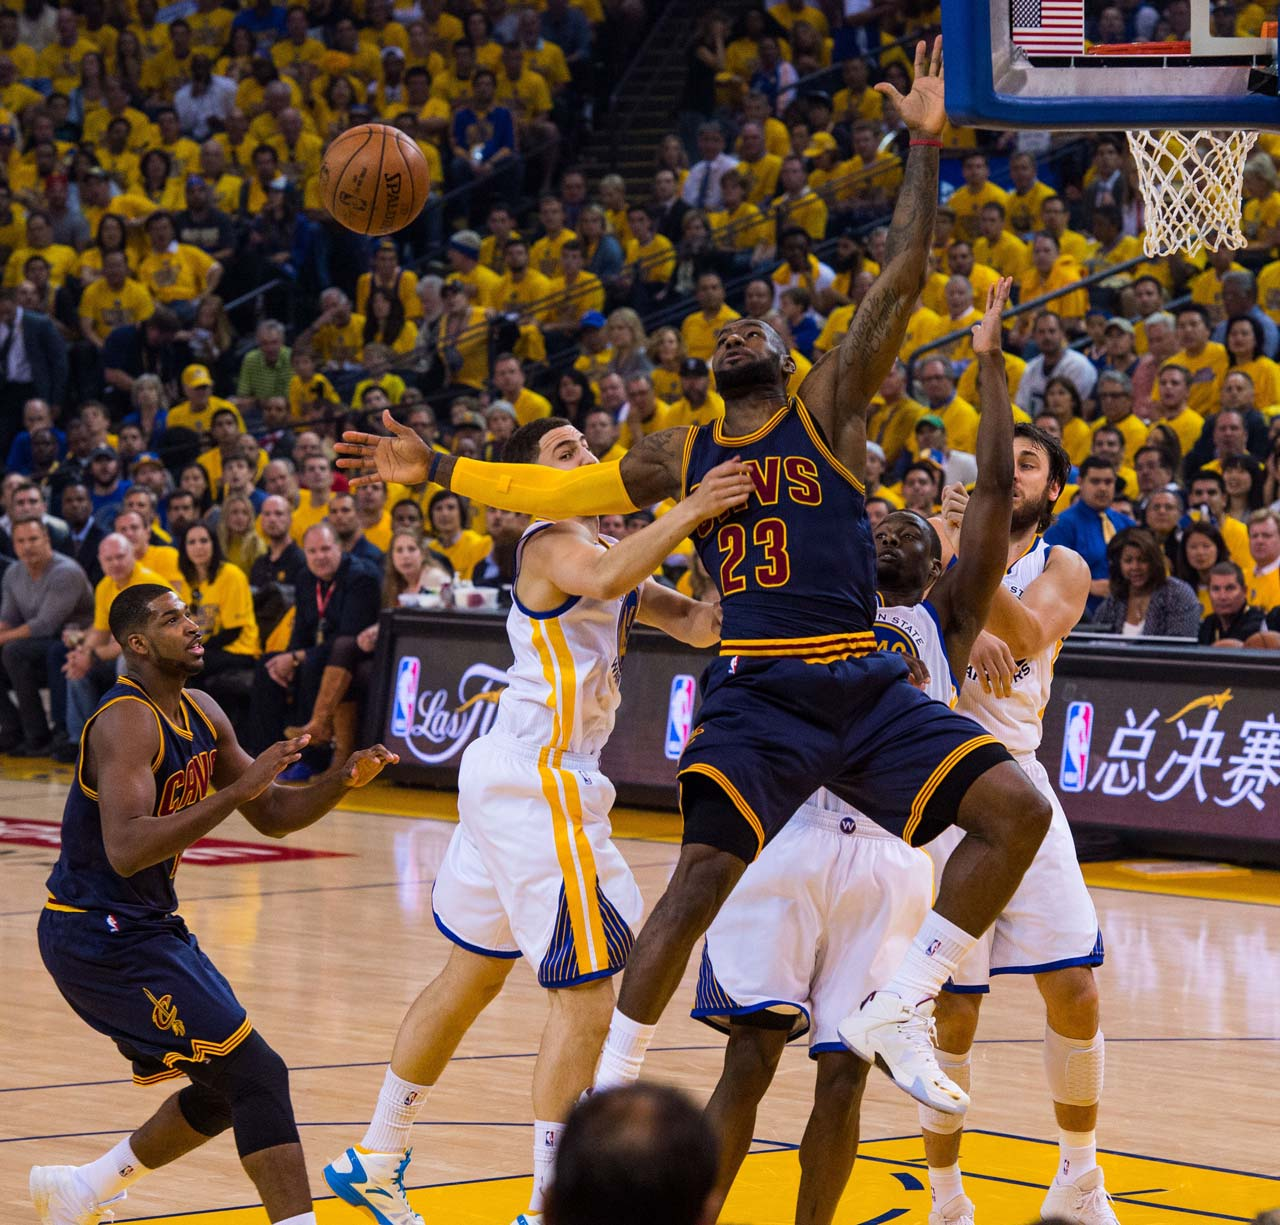 LeBron James gave Golden State fits in regulation, but missed three shots and had two turnovers in overtime.